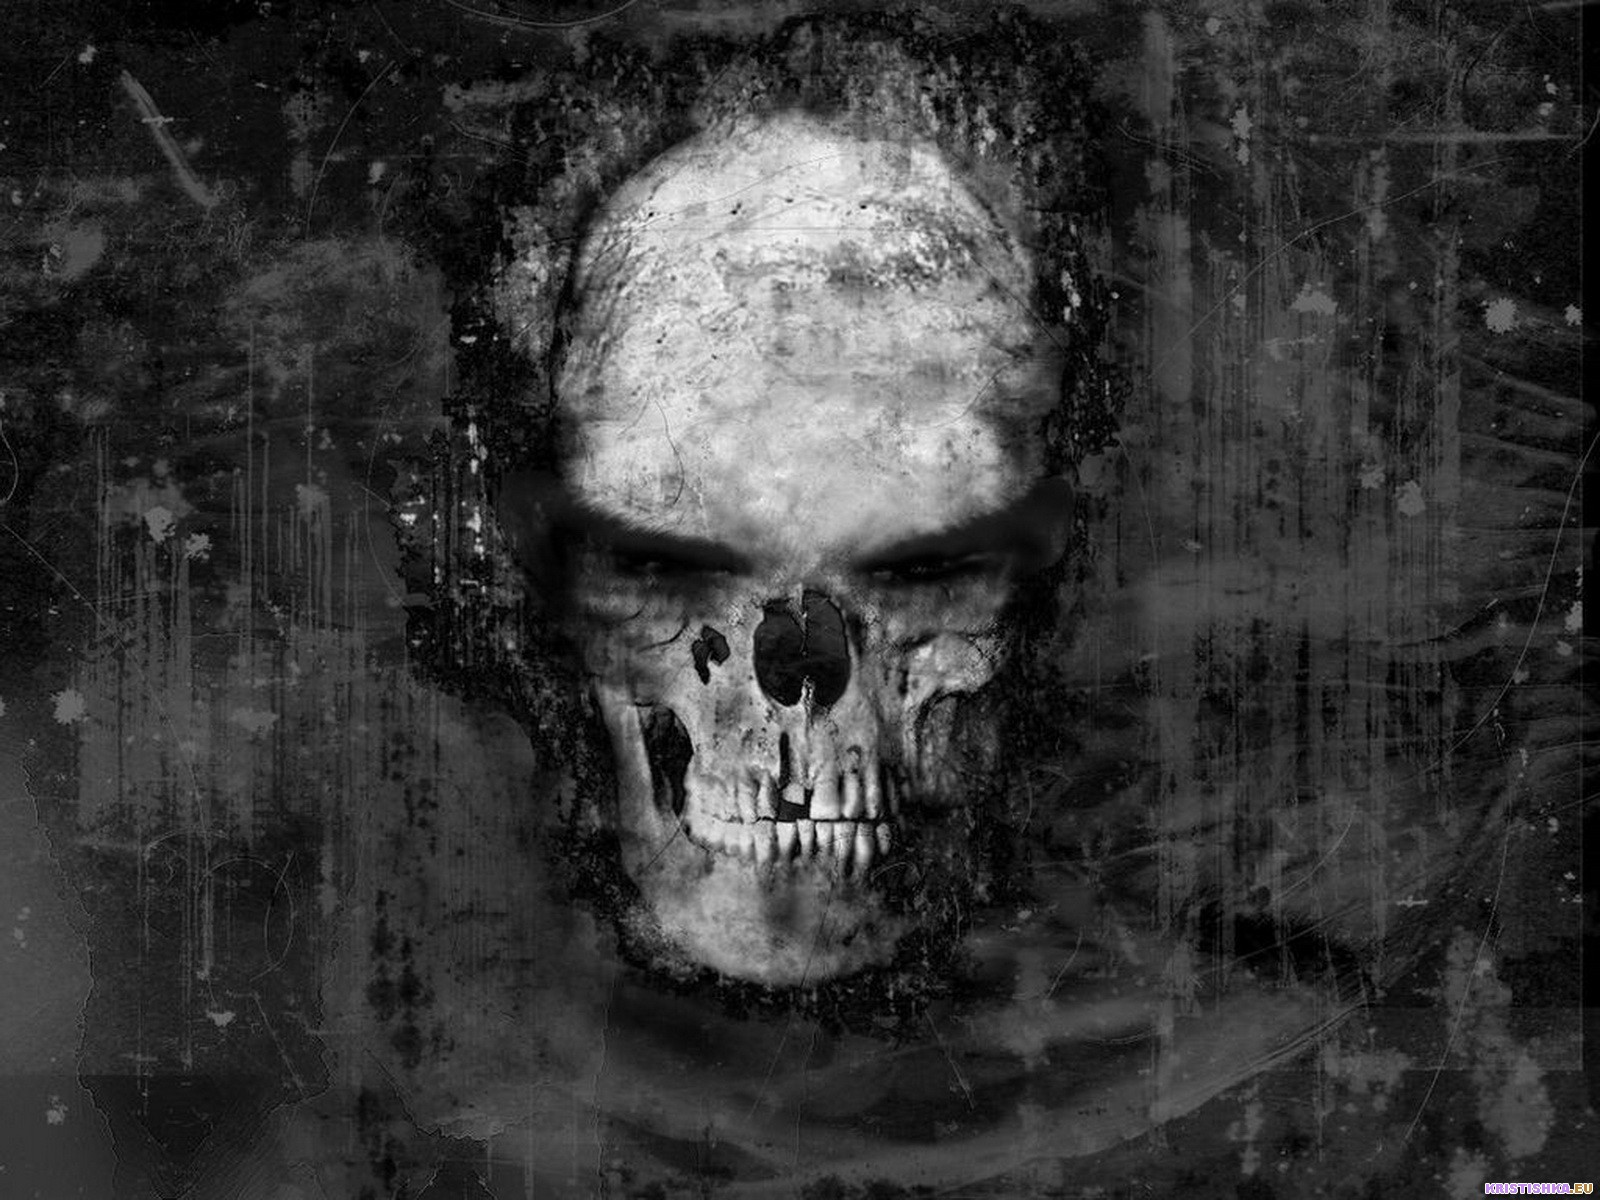 Skull Horror Wallpapers | Wallpapers Collections  Skull Horror Wa...